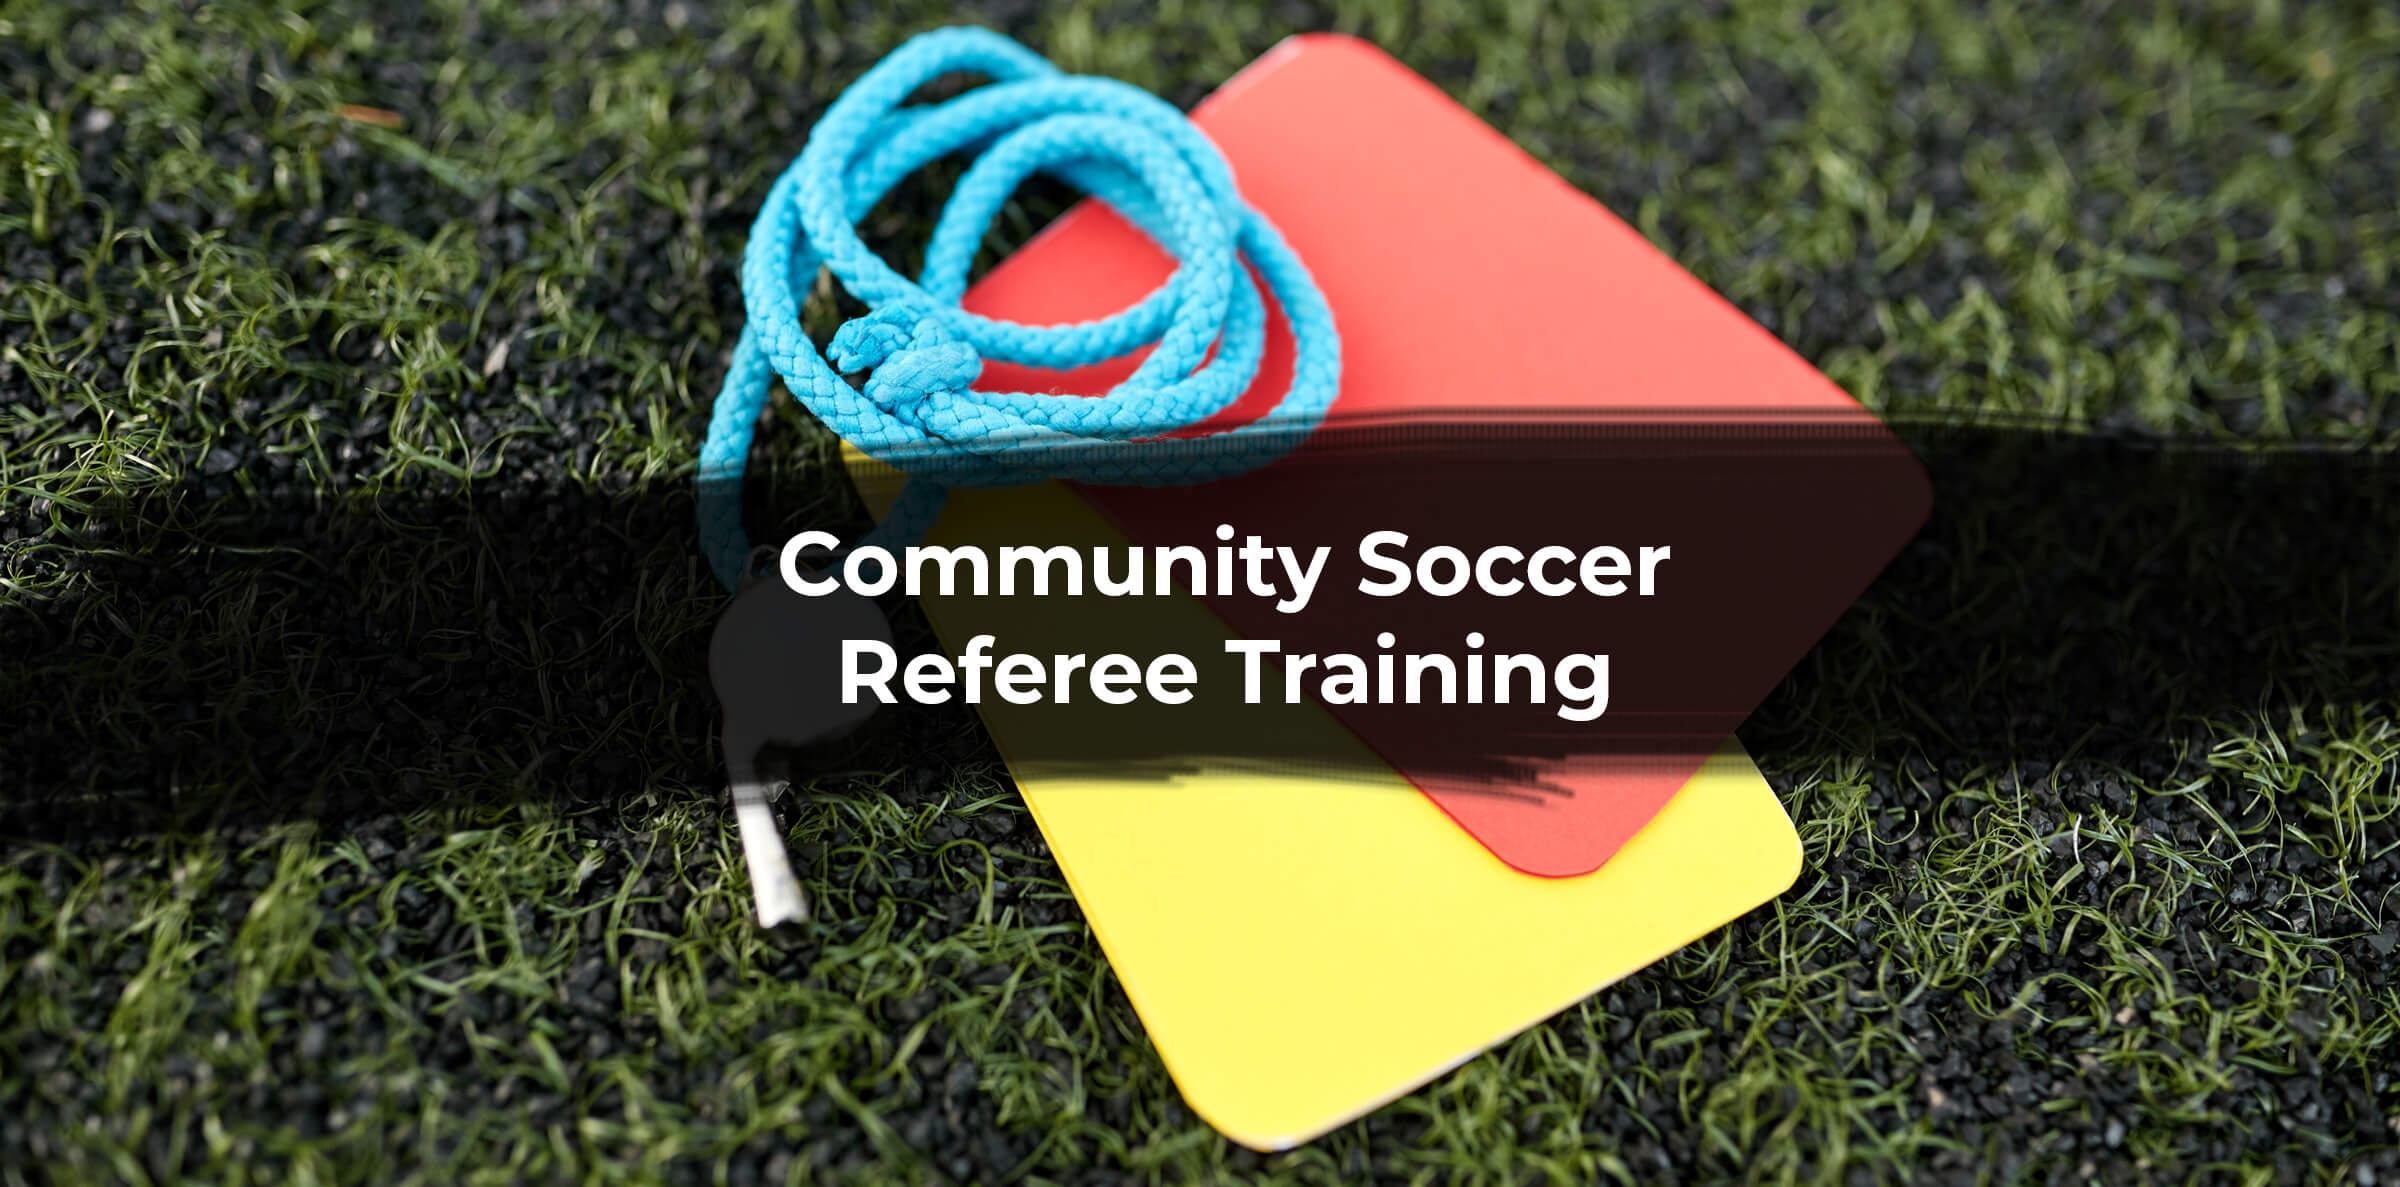 Community Referee Training Video Now Available